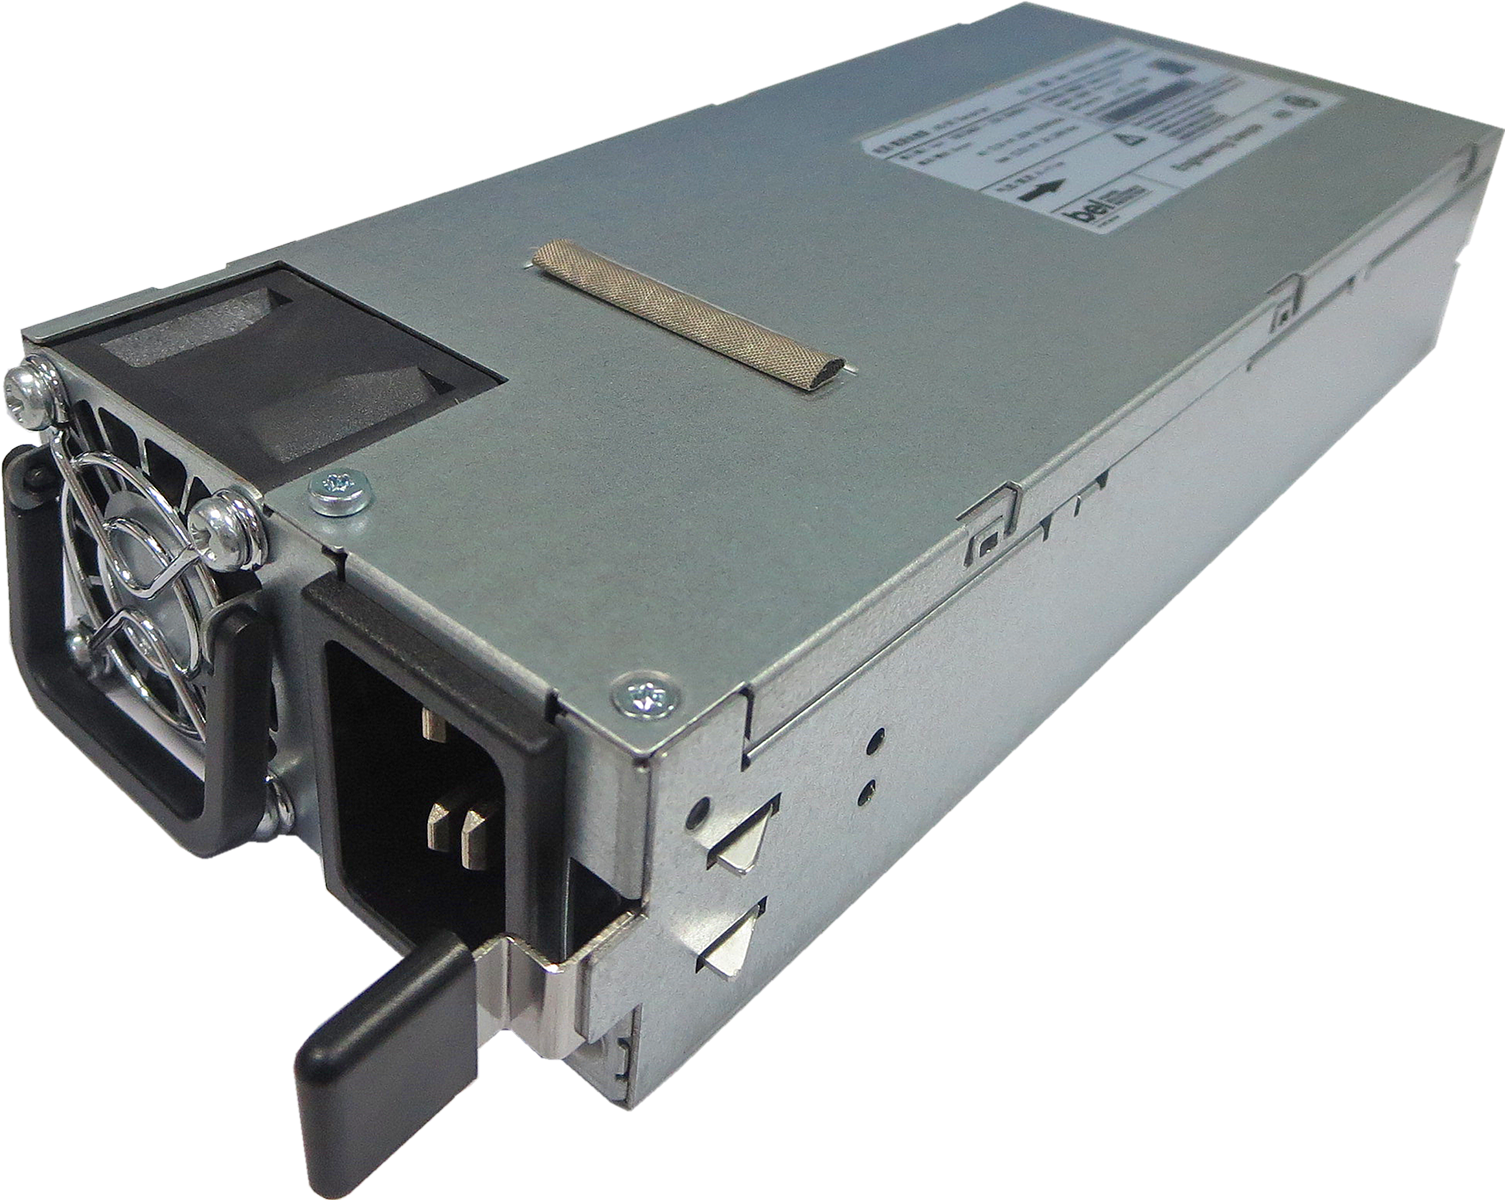 Titanium Efficiency Power Supplies for Server Applications